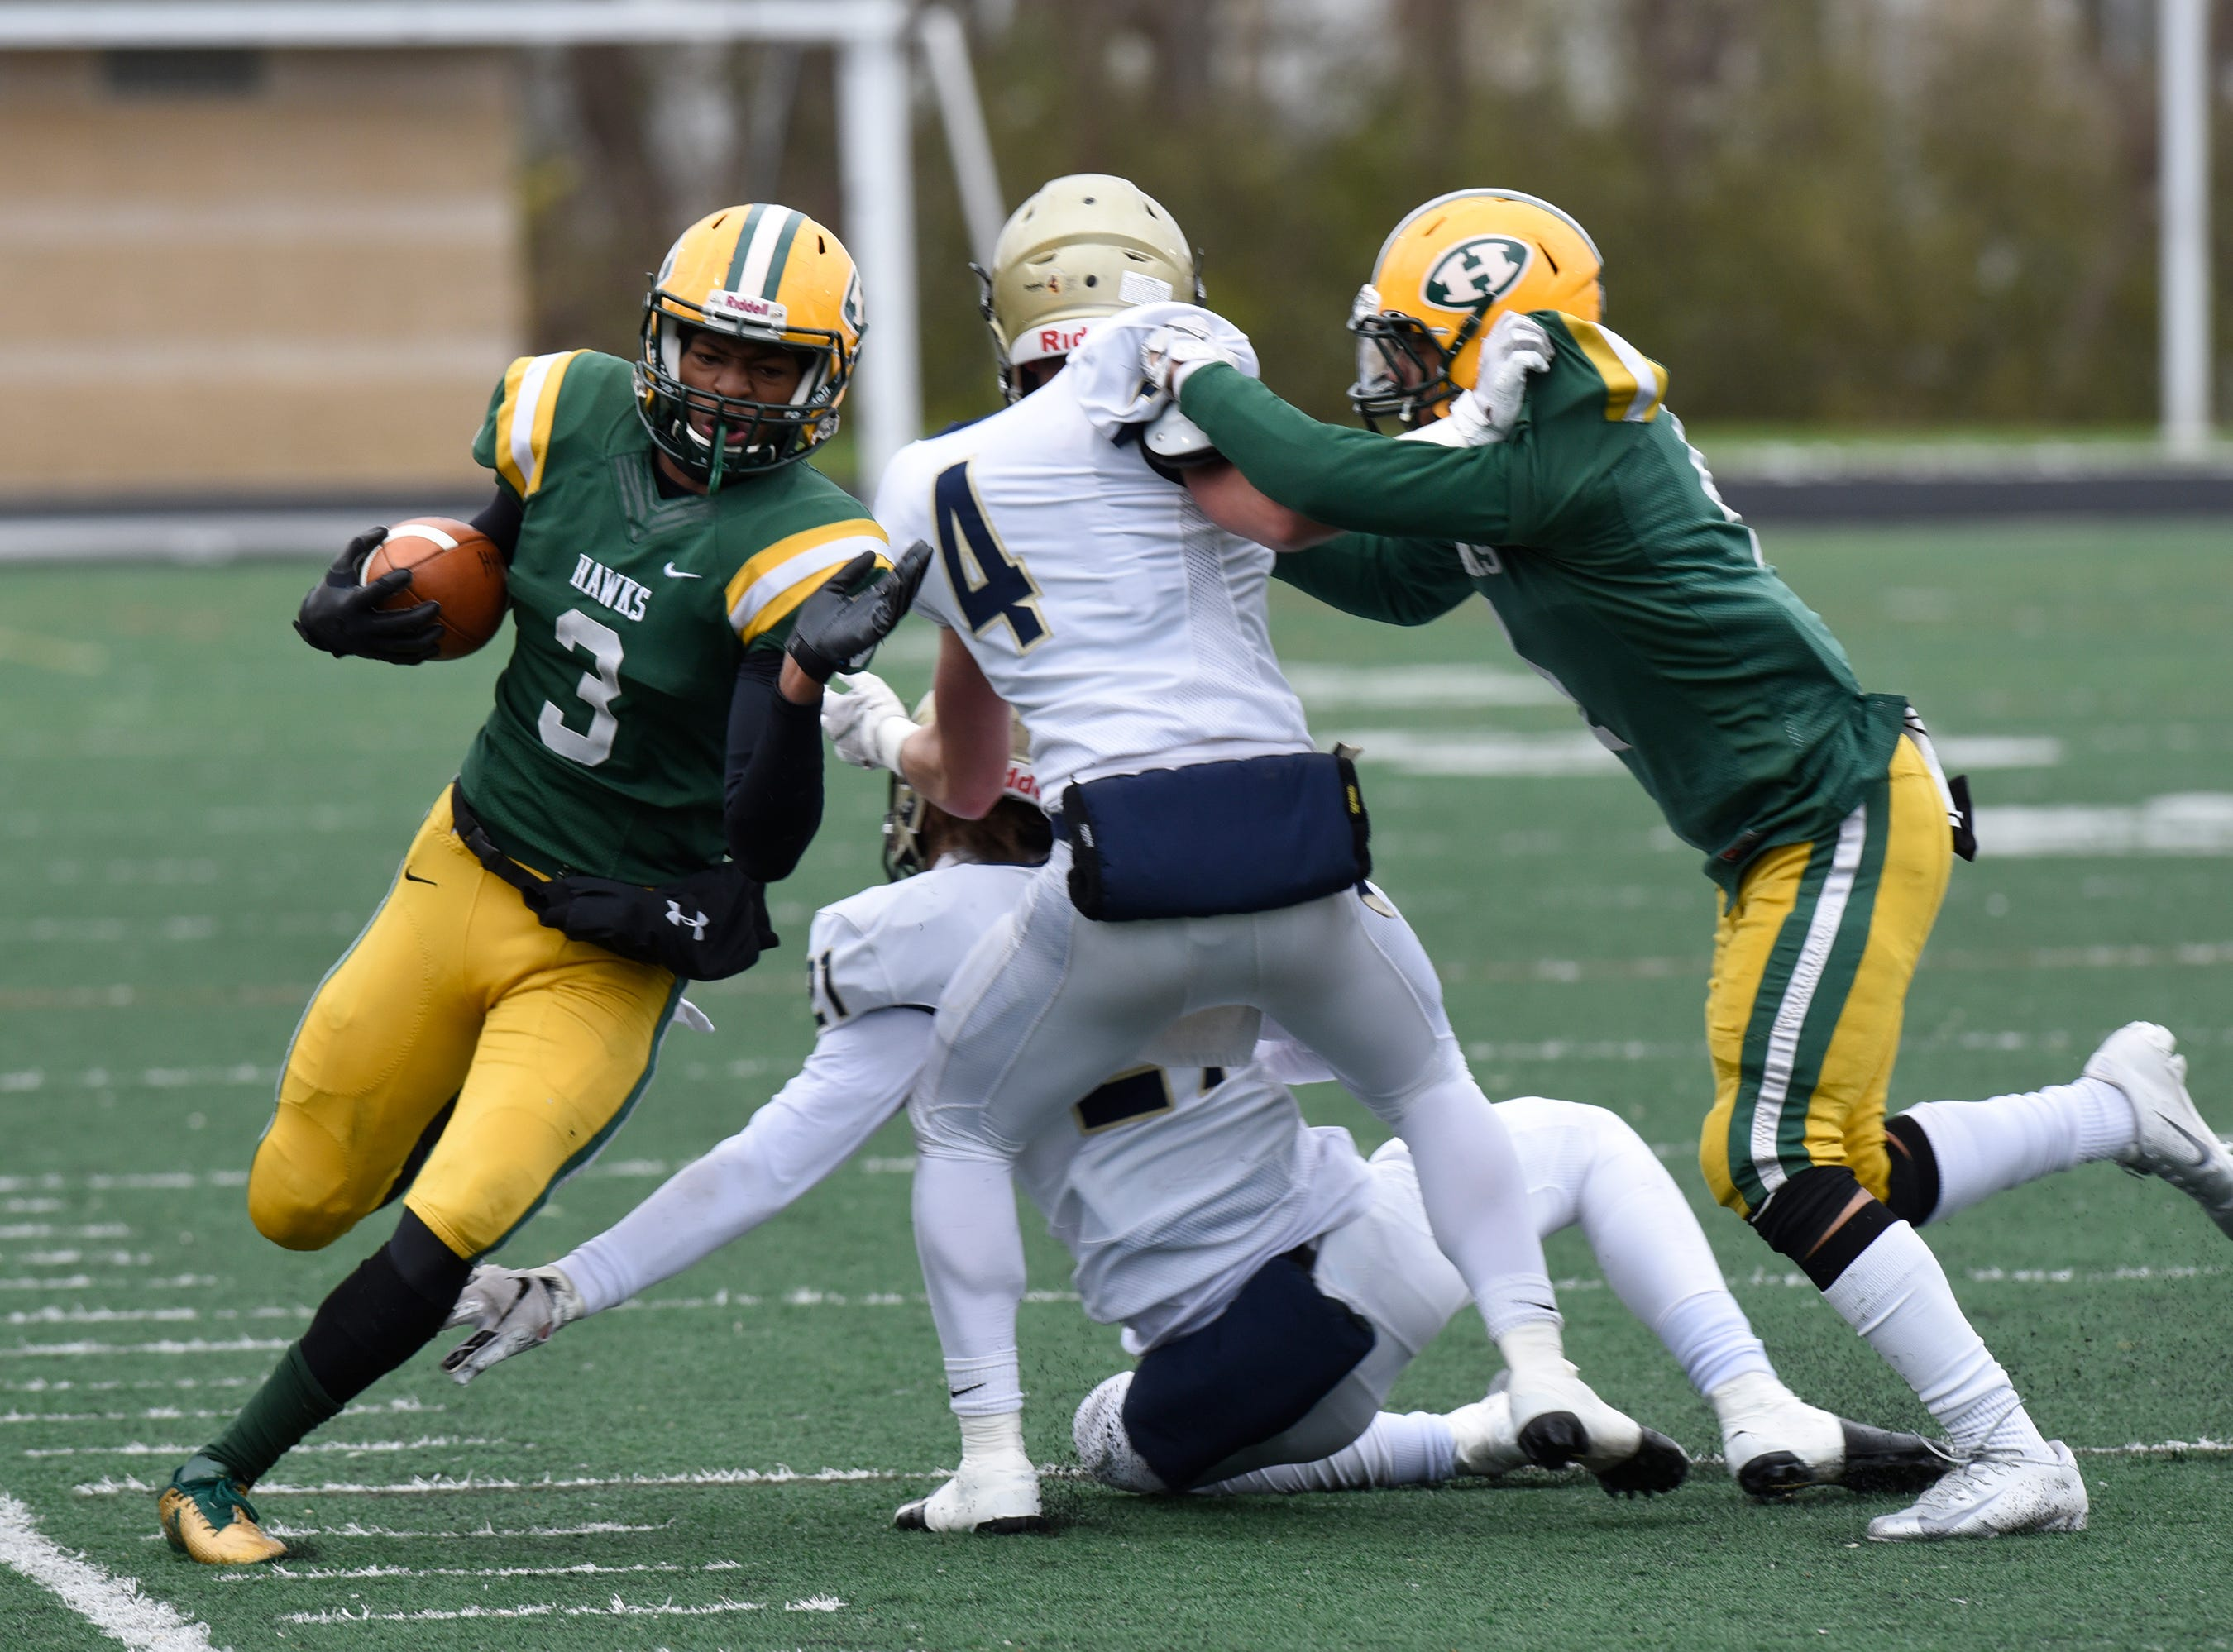 Farmington Harrison RB/DB Roderick Heard (3) during first half of the Division 4 regional final against Chelsea played at Buller Field Nov. 10, 2018